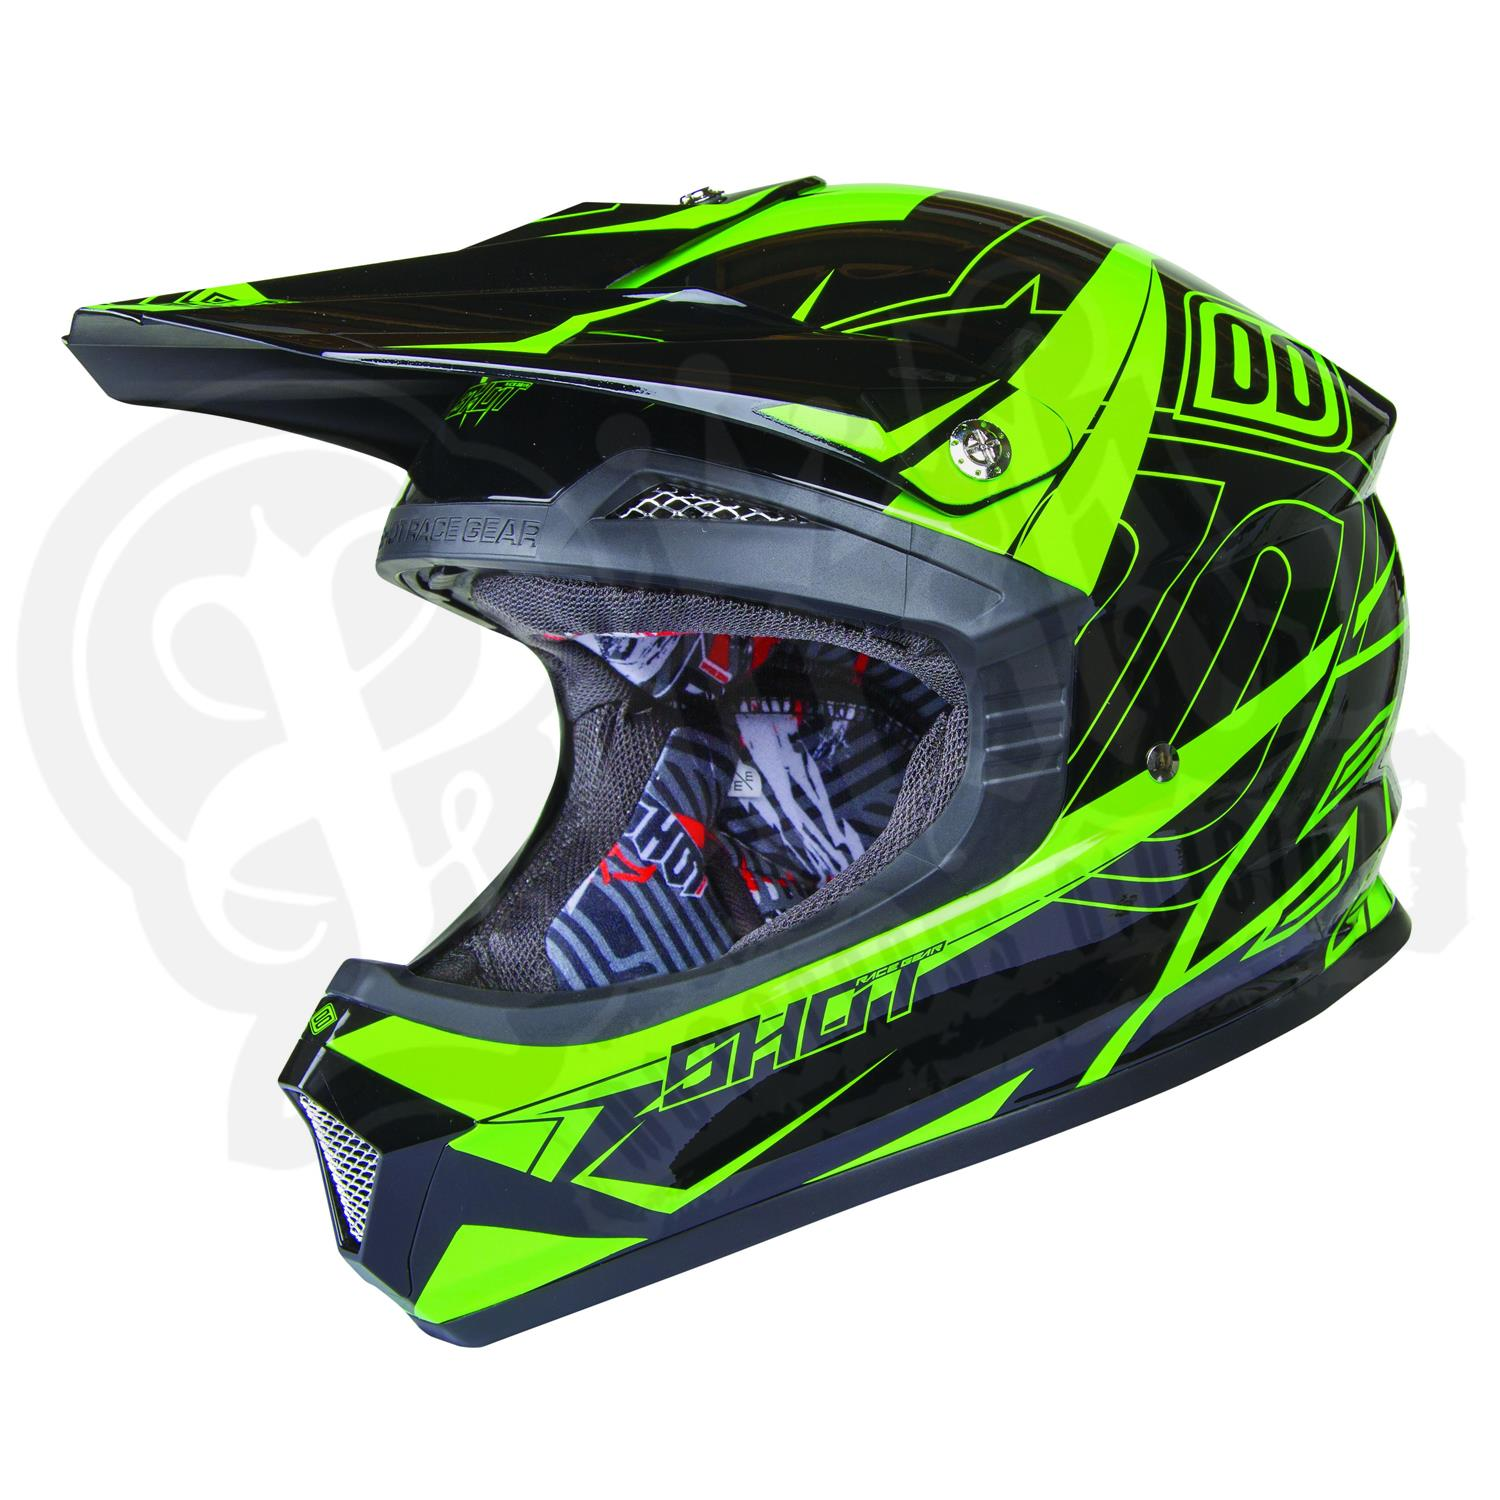 acheter un casque de motocross sur internet. Black Bedroom Furniture Sets. Home Design Ideas